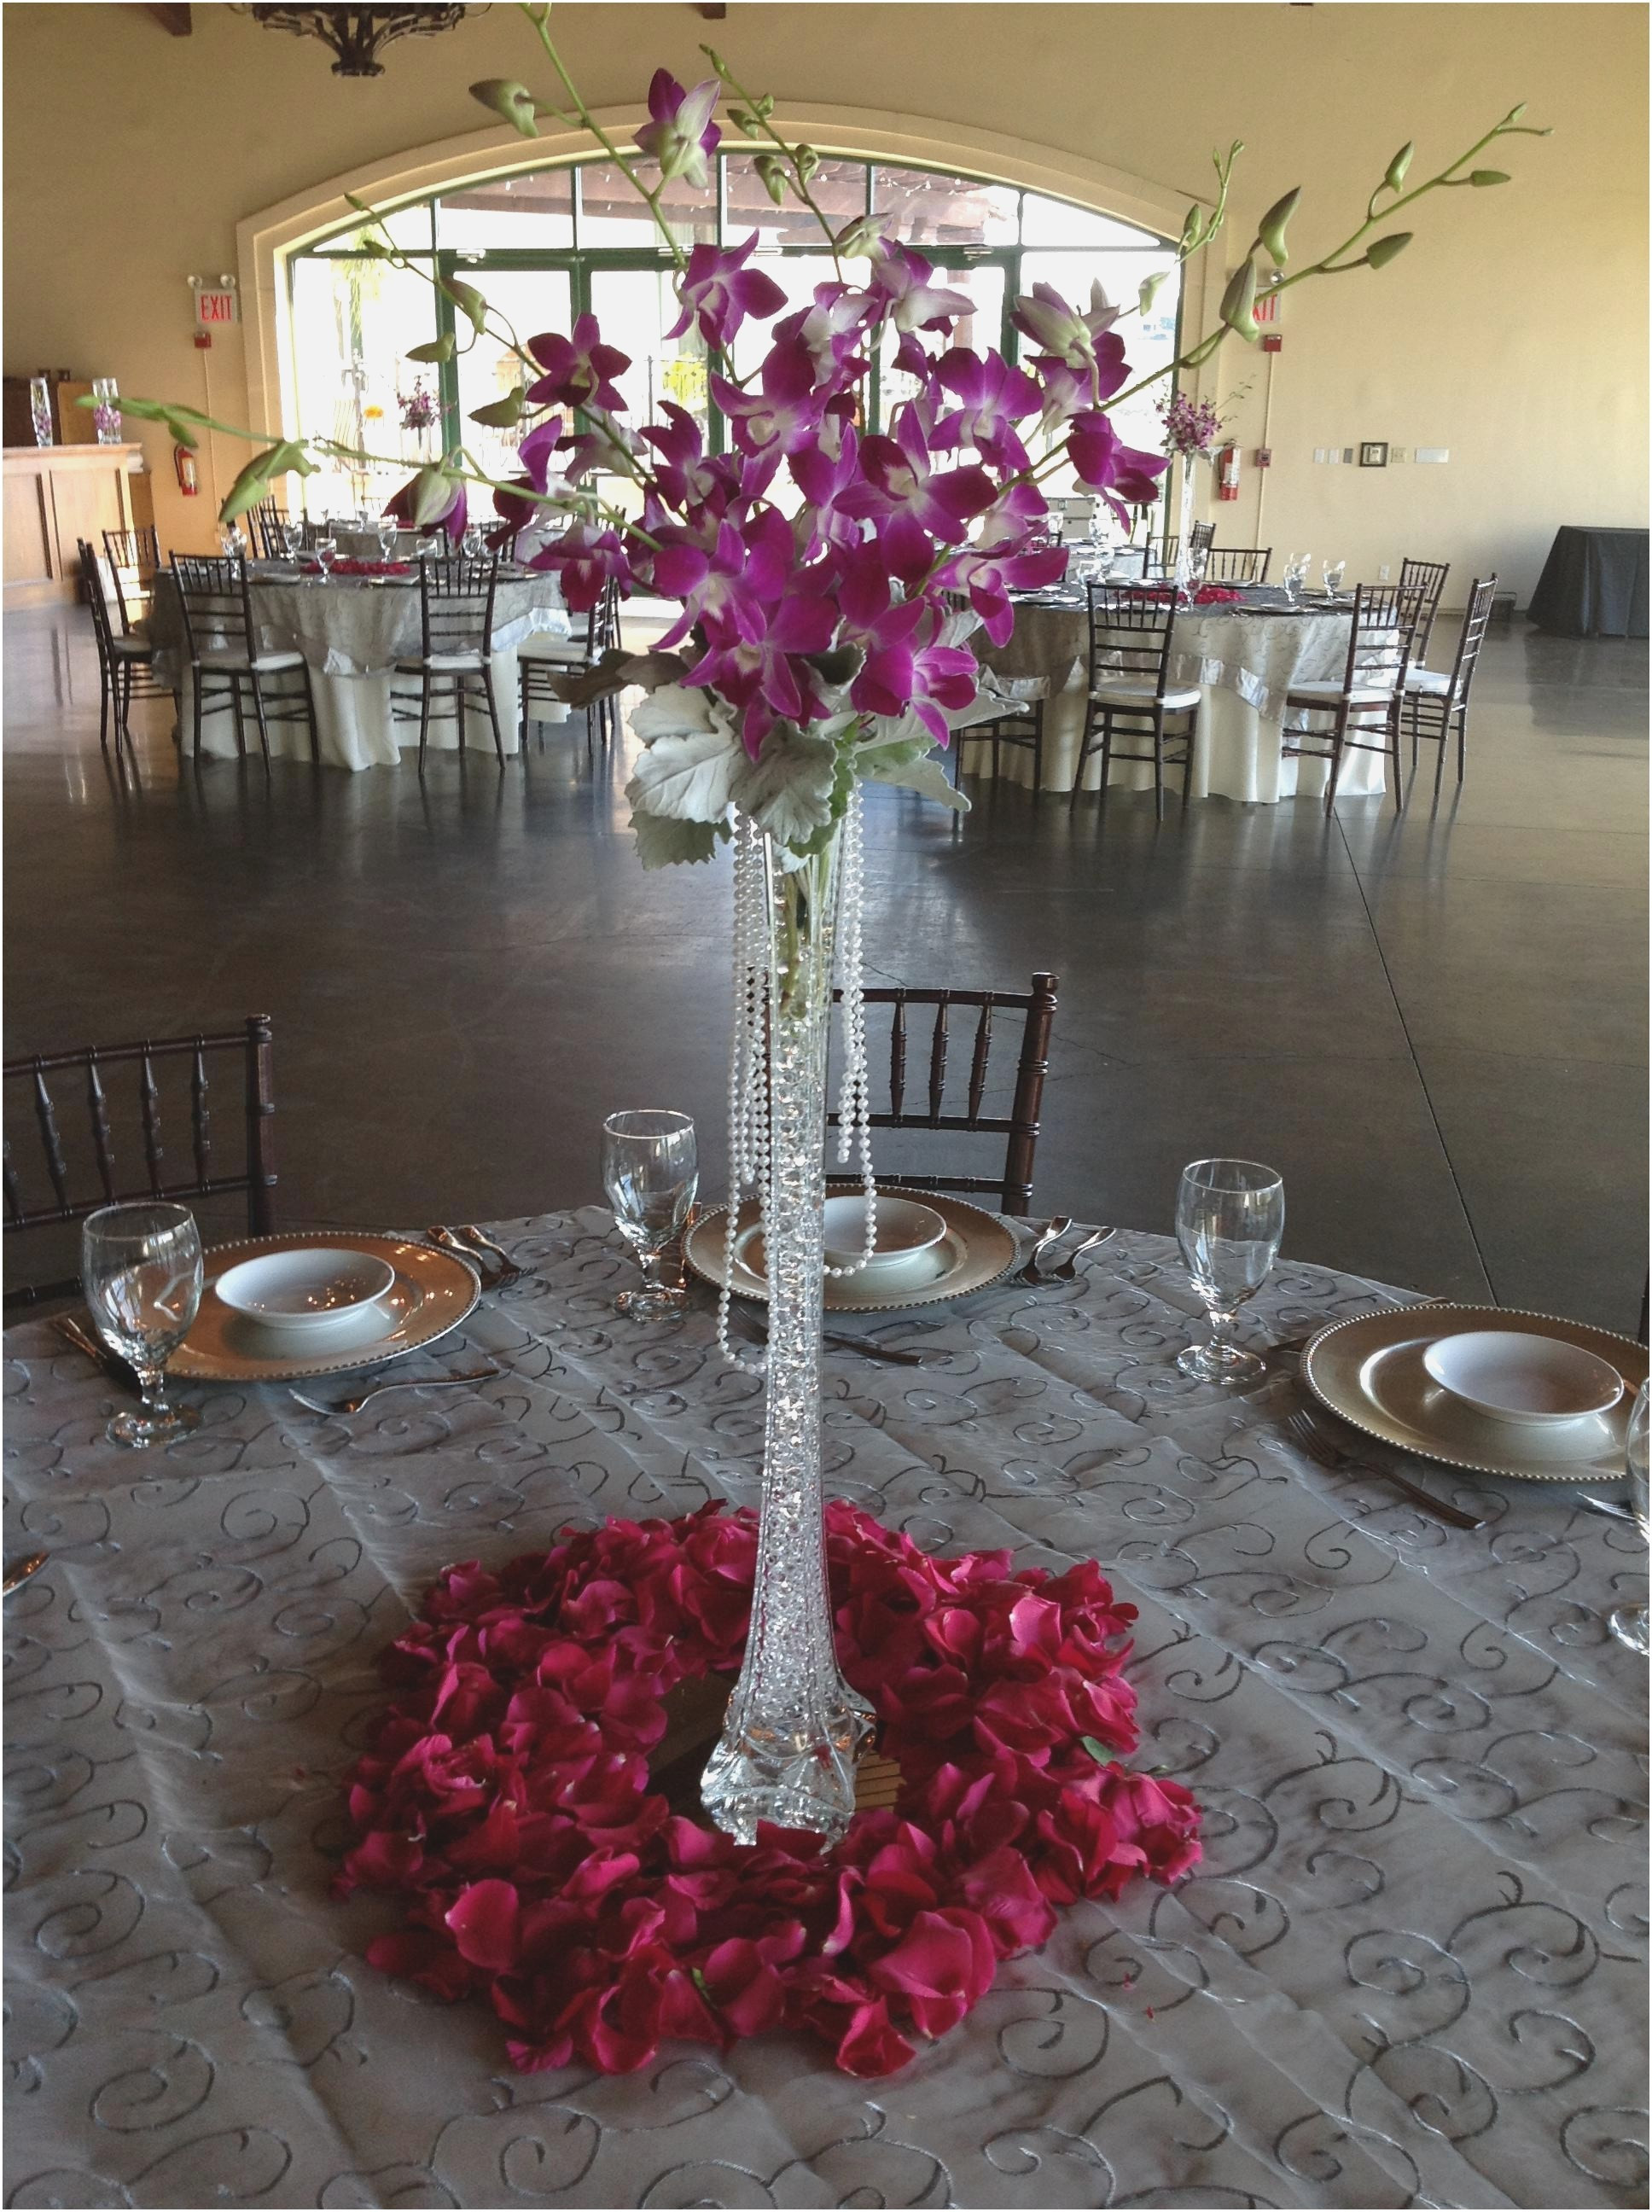 Glass Candy Vases Of Elegant Living Rooms Luxury Candy for Wedding Elegant Living Room with Elegant Living Rooms Luxury Candy for Wedding Elegant Living Room Vases Wedding Inspirational H